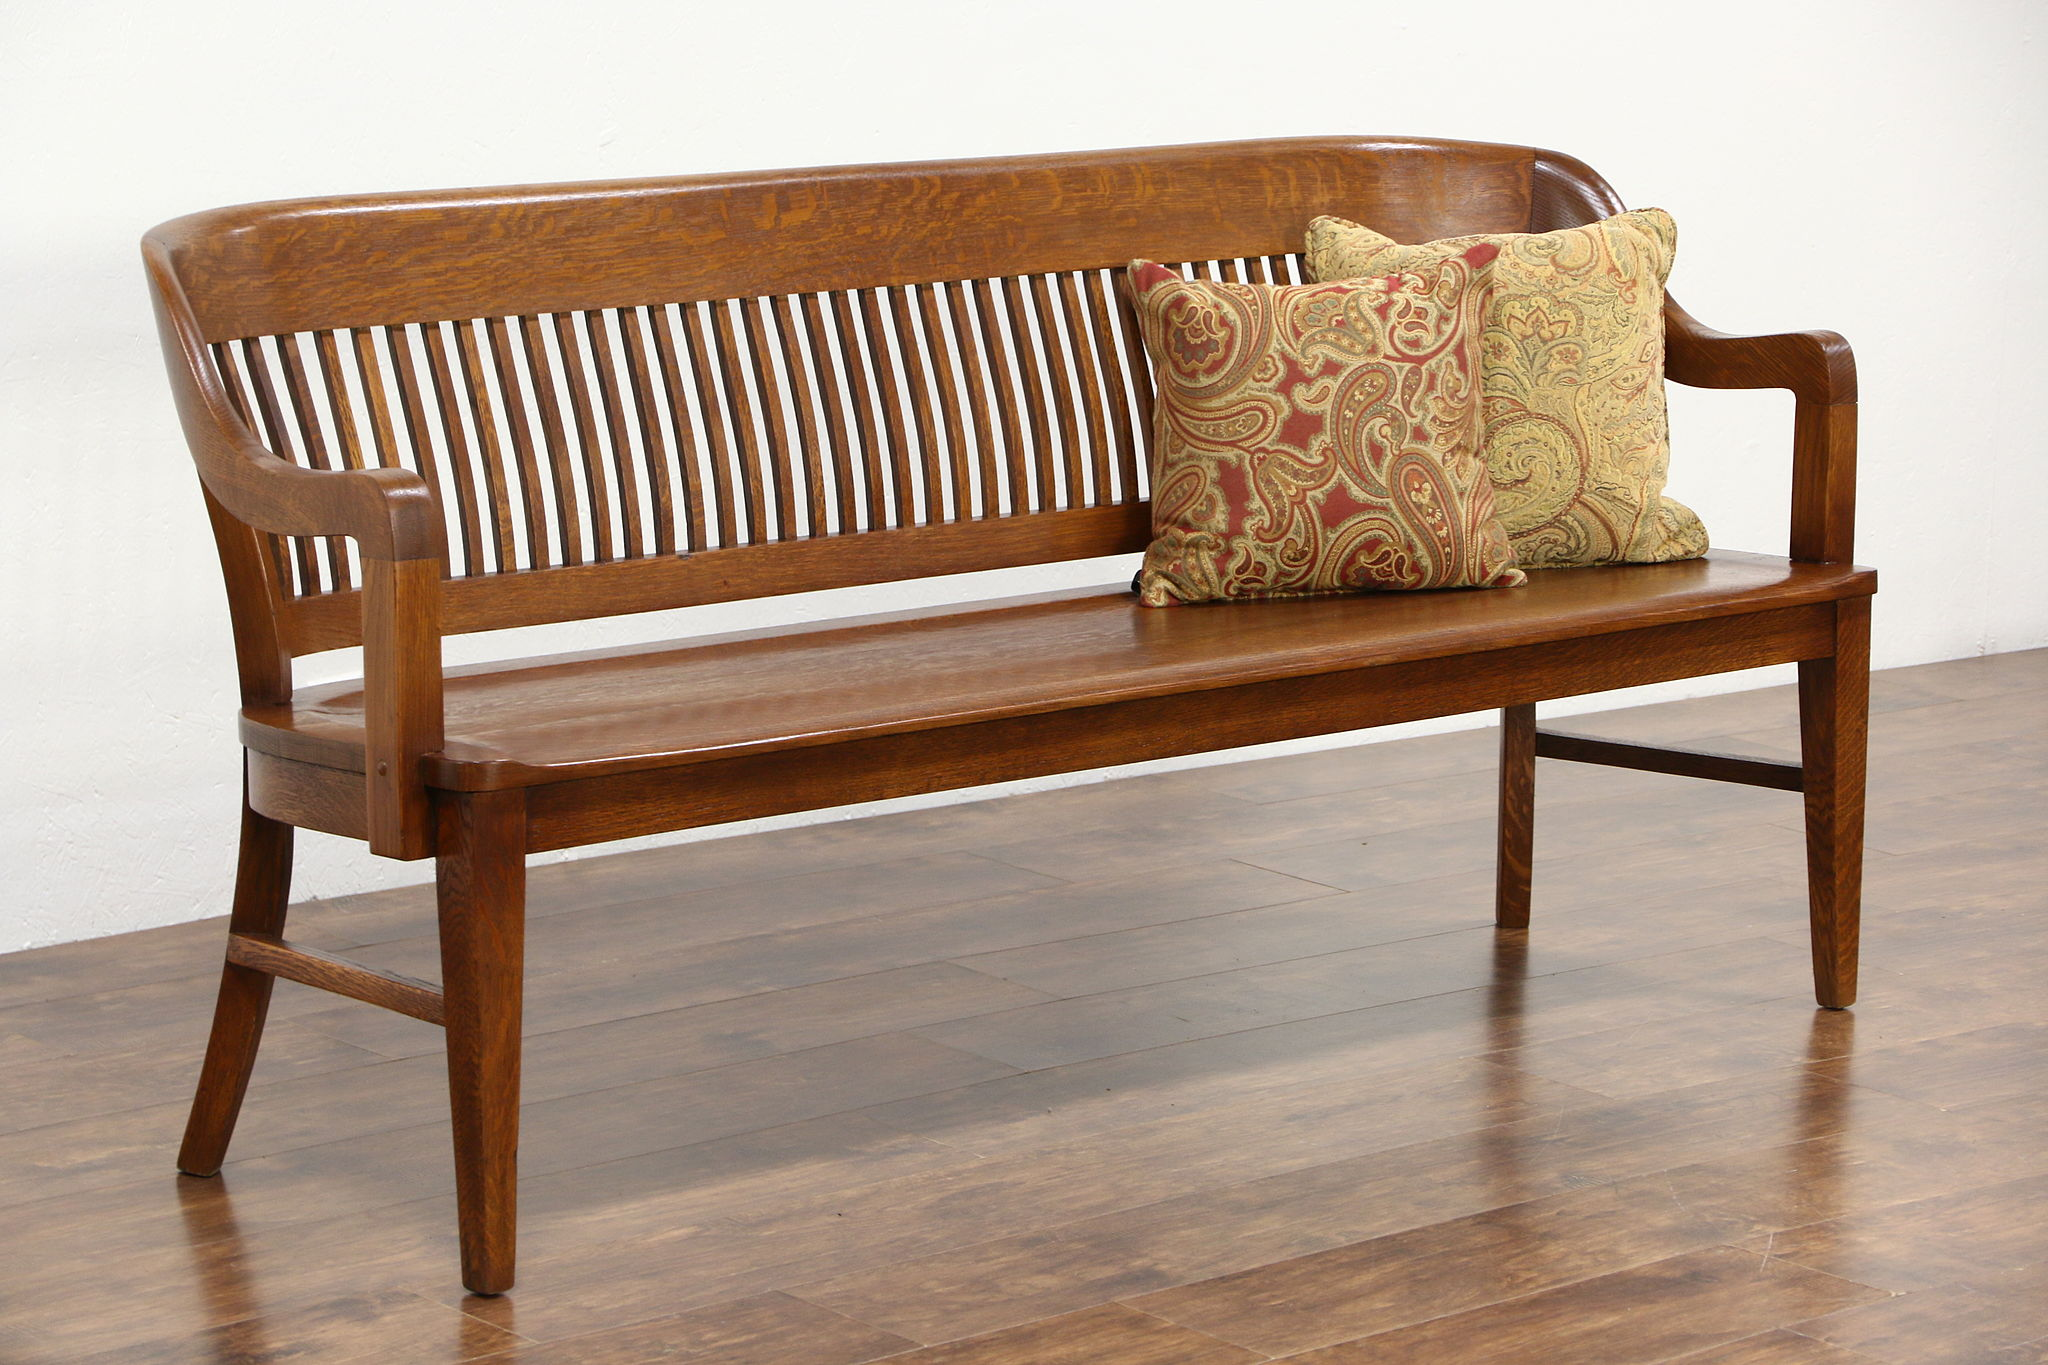 SOLD - Railroad Station Antique 1900 Oak Bench, Signed Milwaukee ...